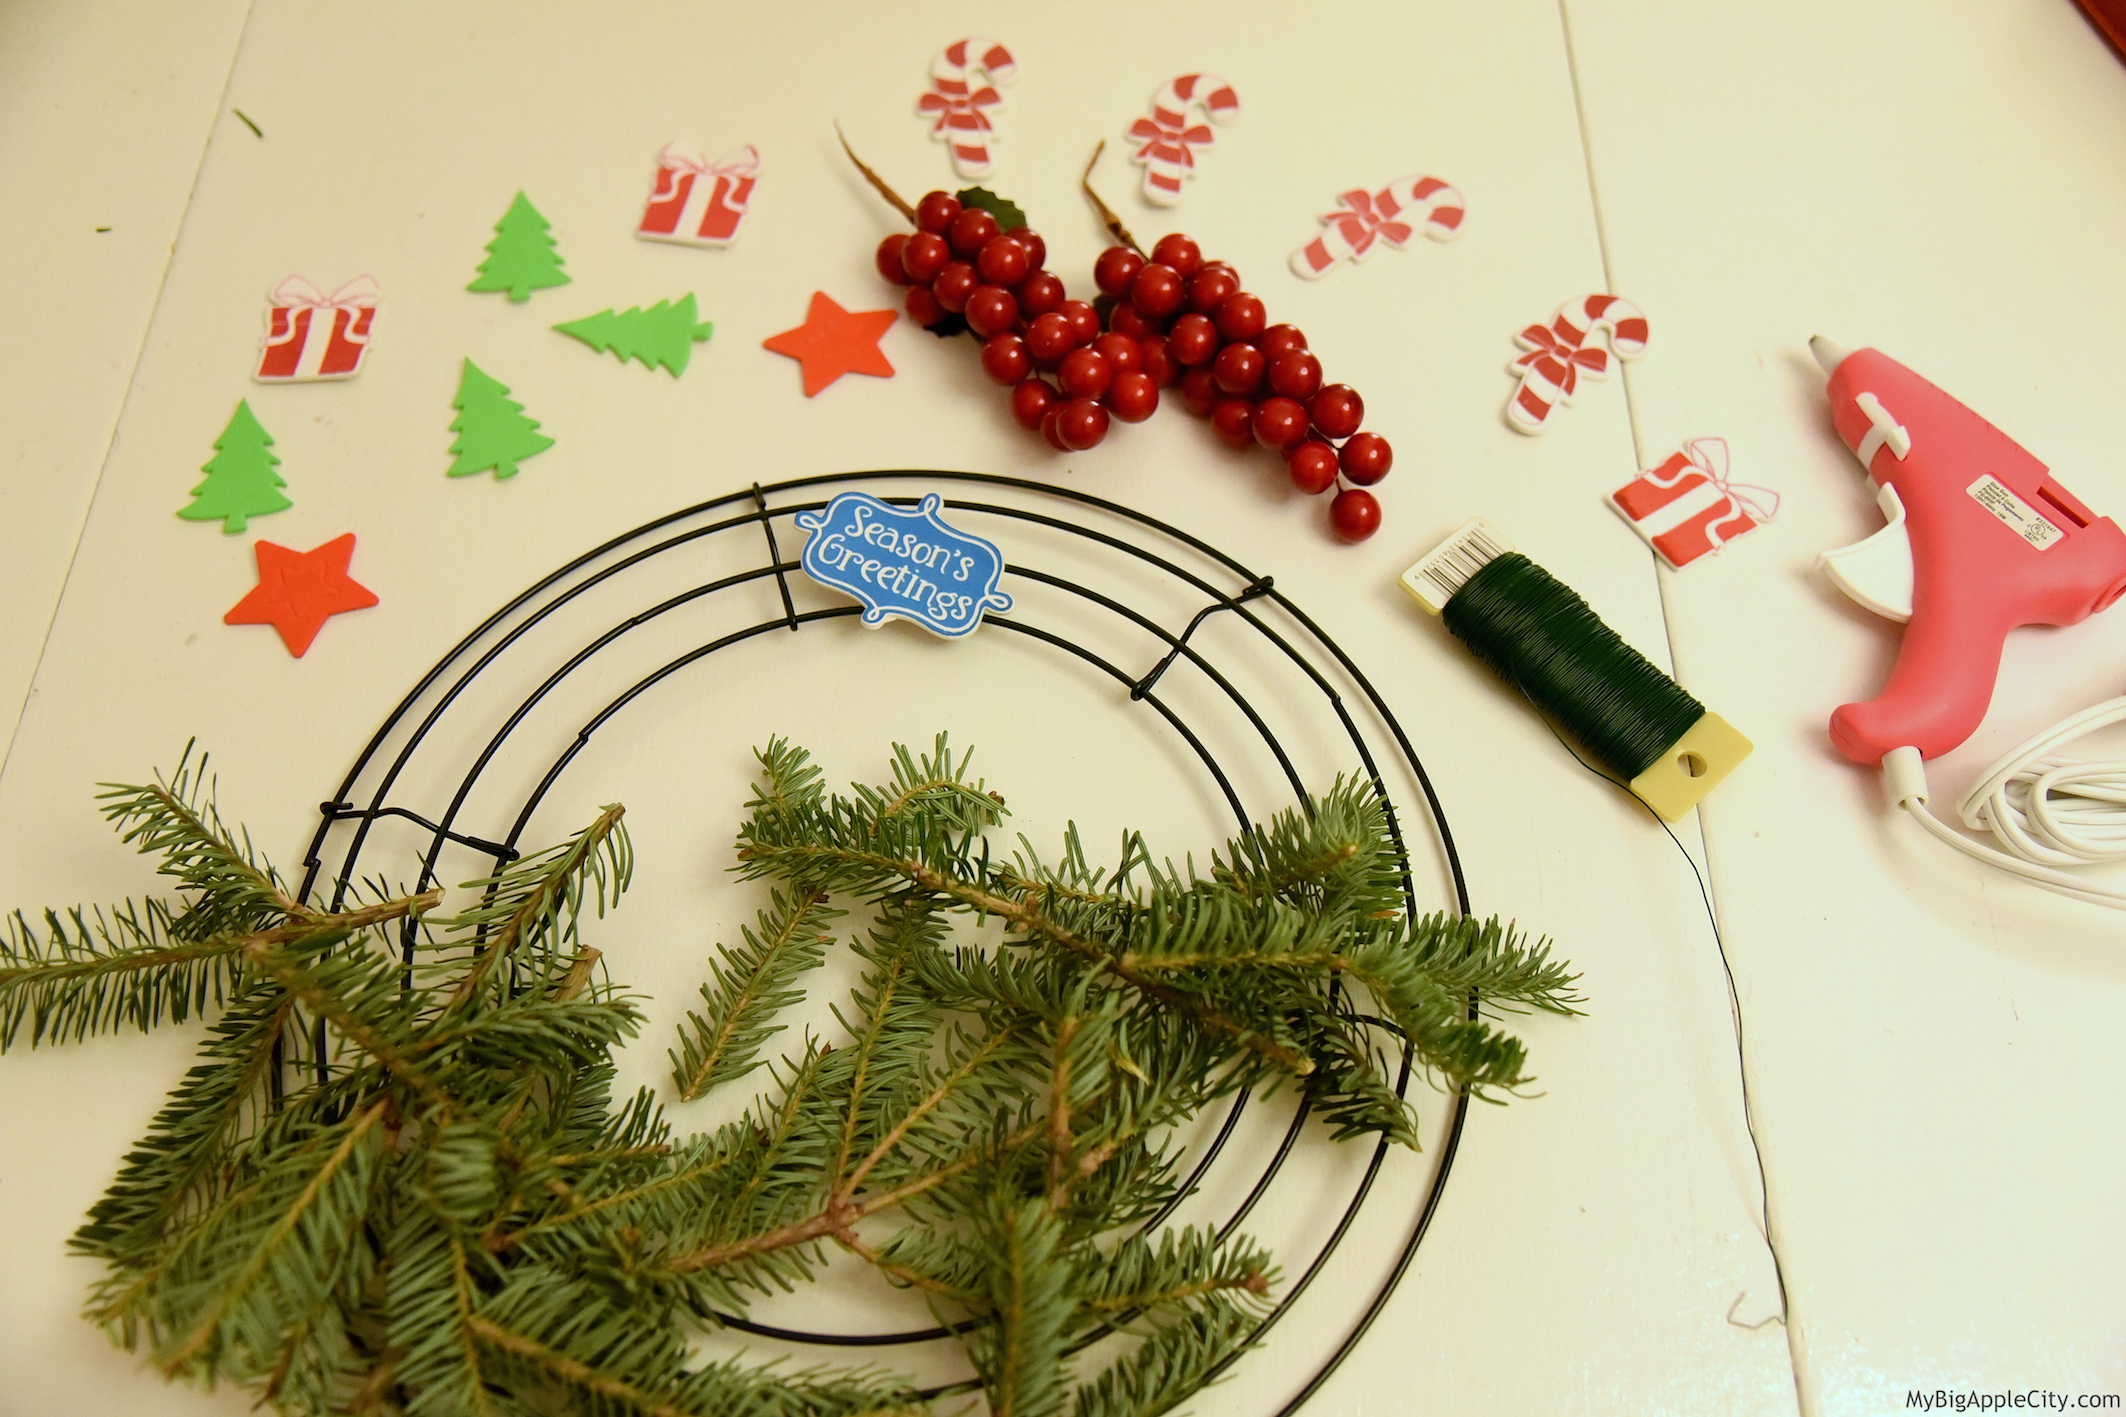 DIY-Christmas-Wreath-Lifestyle-Blogger-NYC-MyBigAppleCity